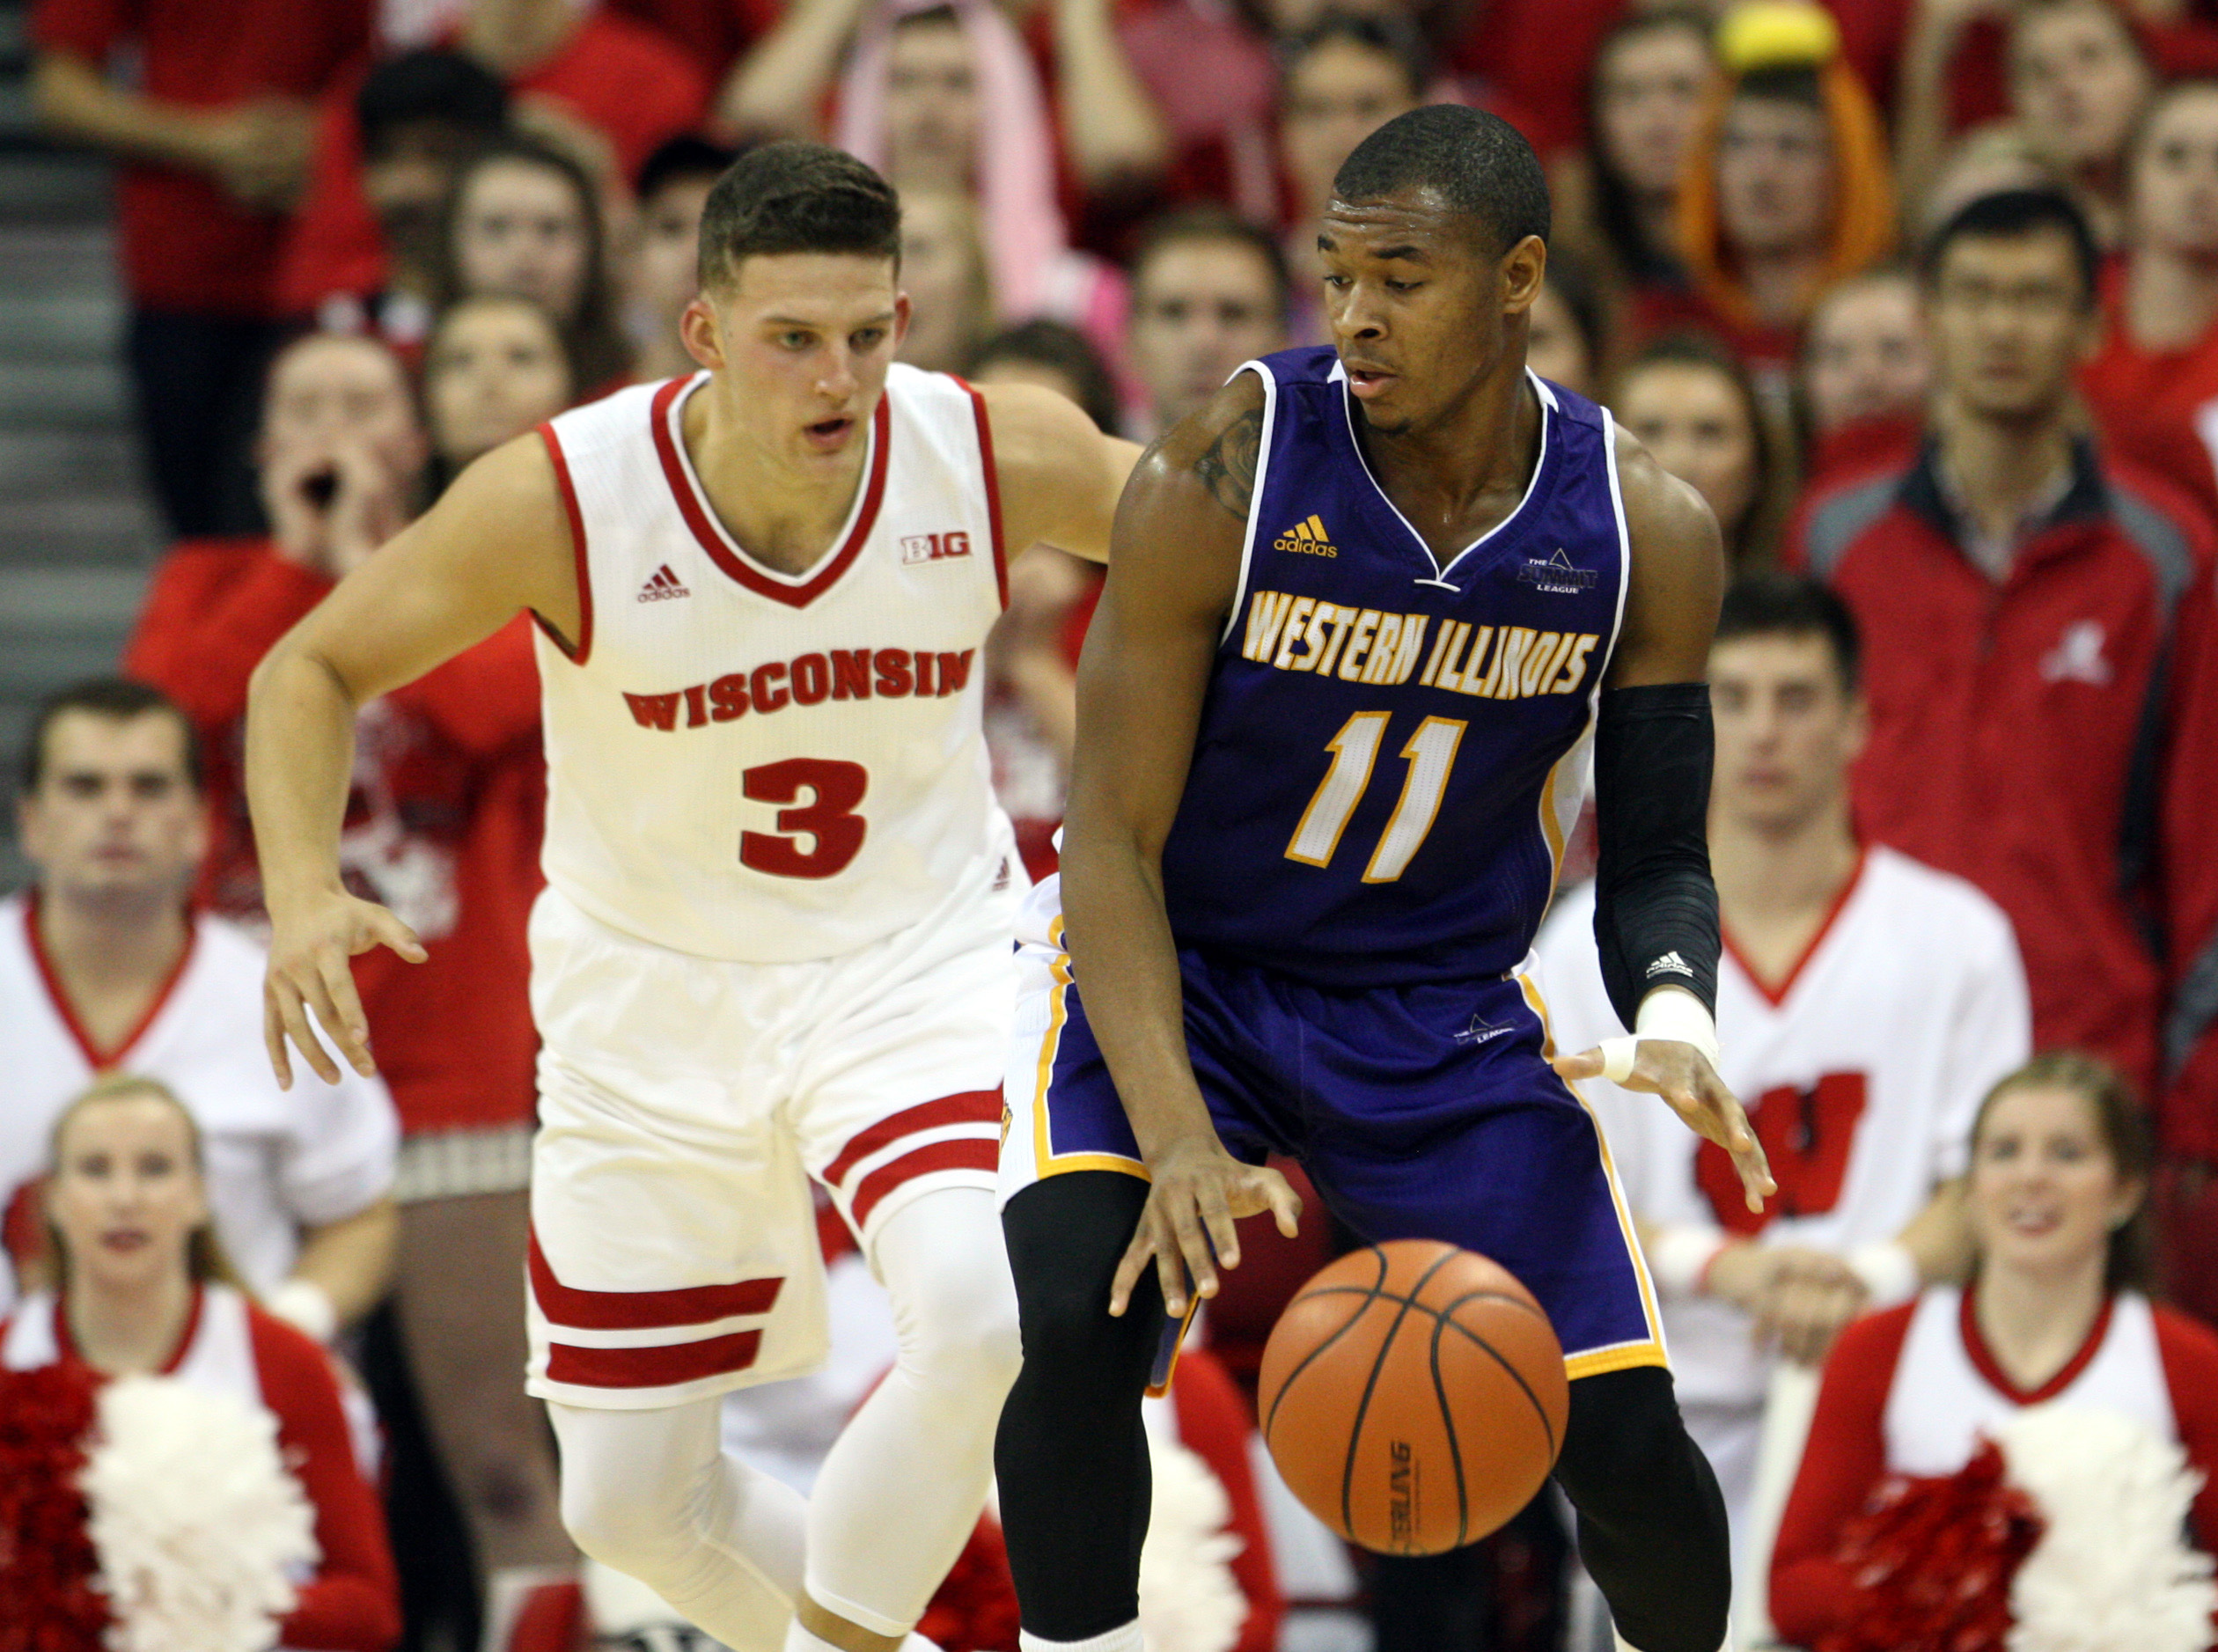 Western Illinois invades Bramlage for the first time since the Jacob Pullen era.